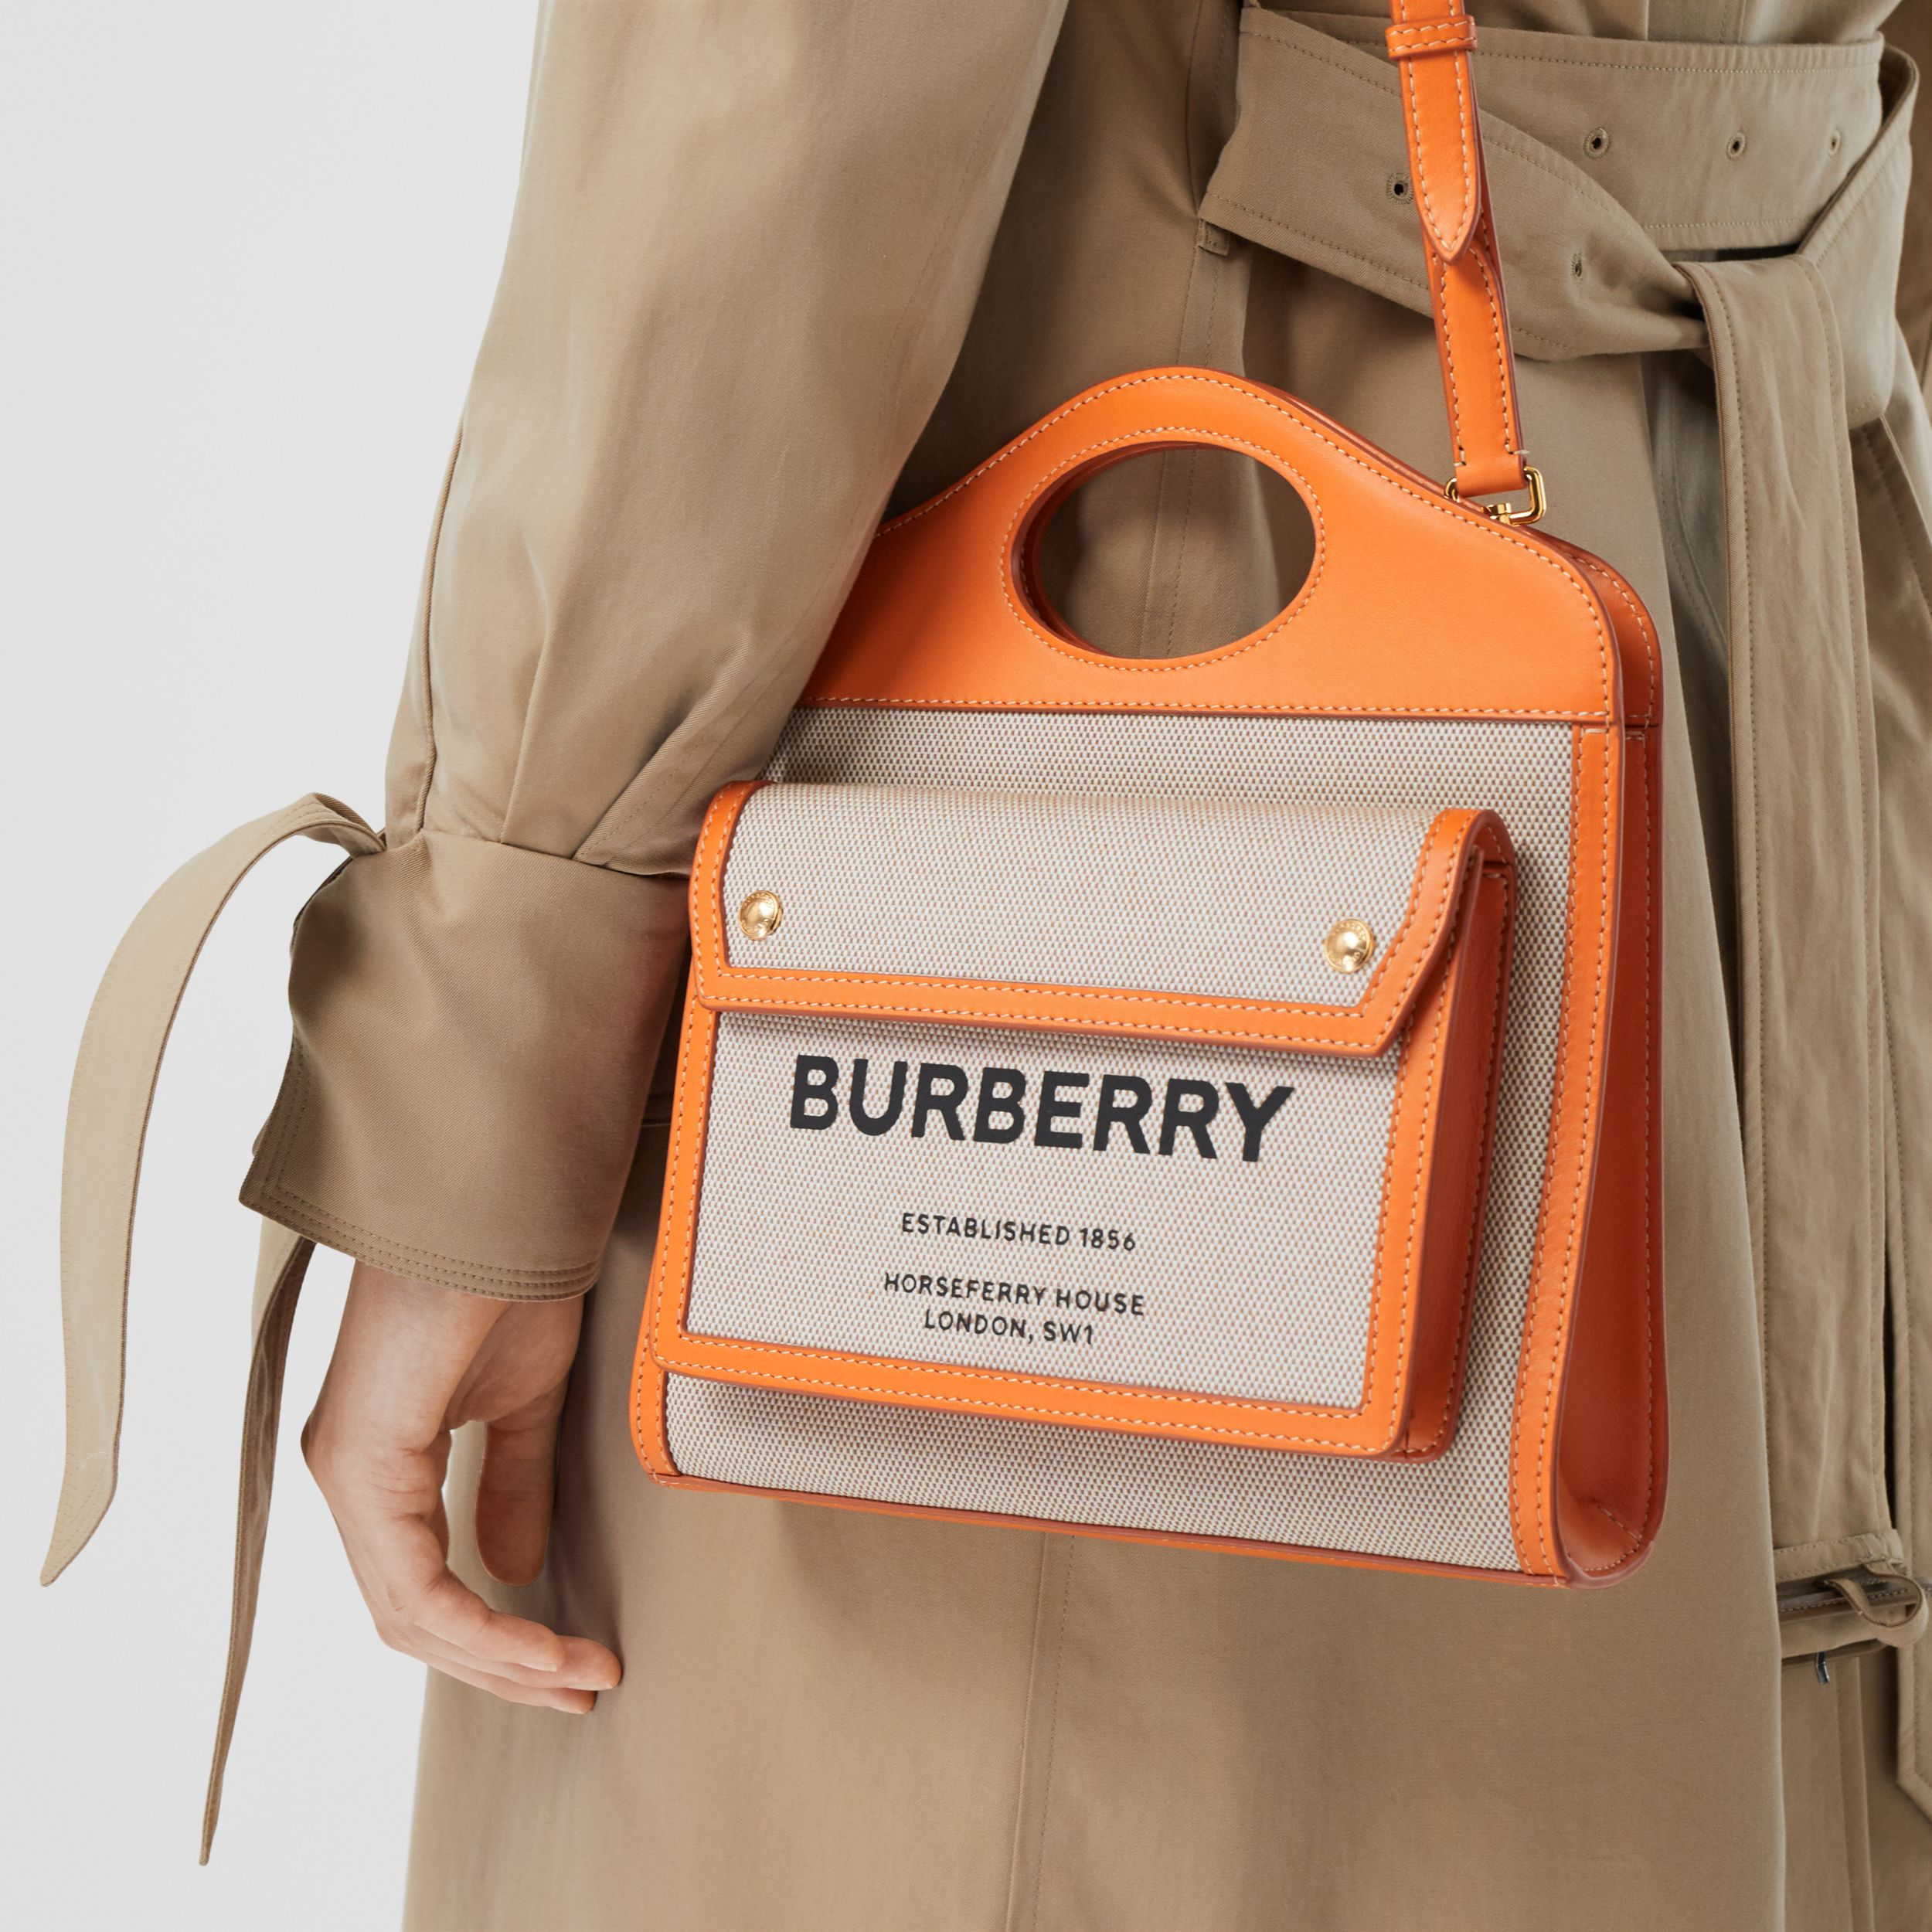 Mini Two-tone Canvas and Leather Pocket Bag in Orange - Women | Burberry - 3